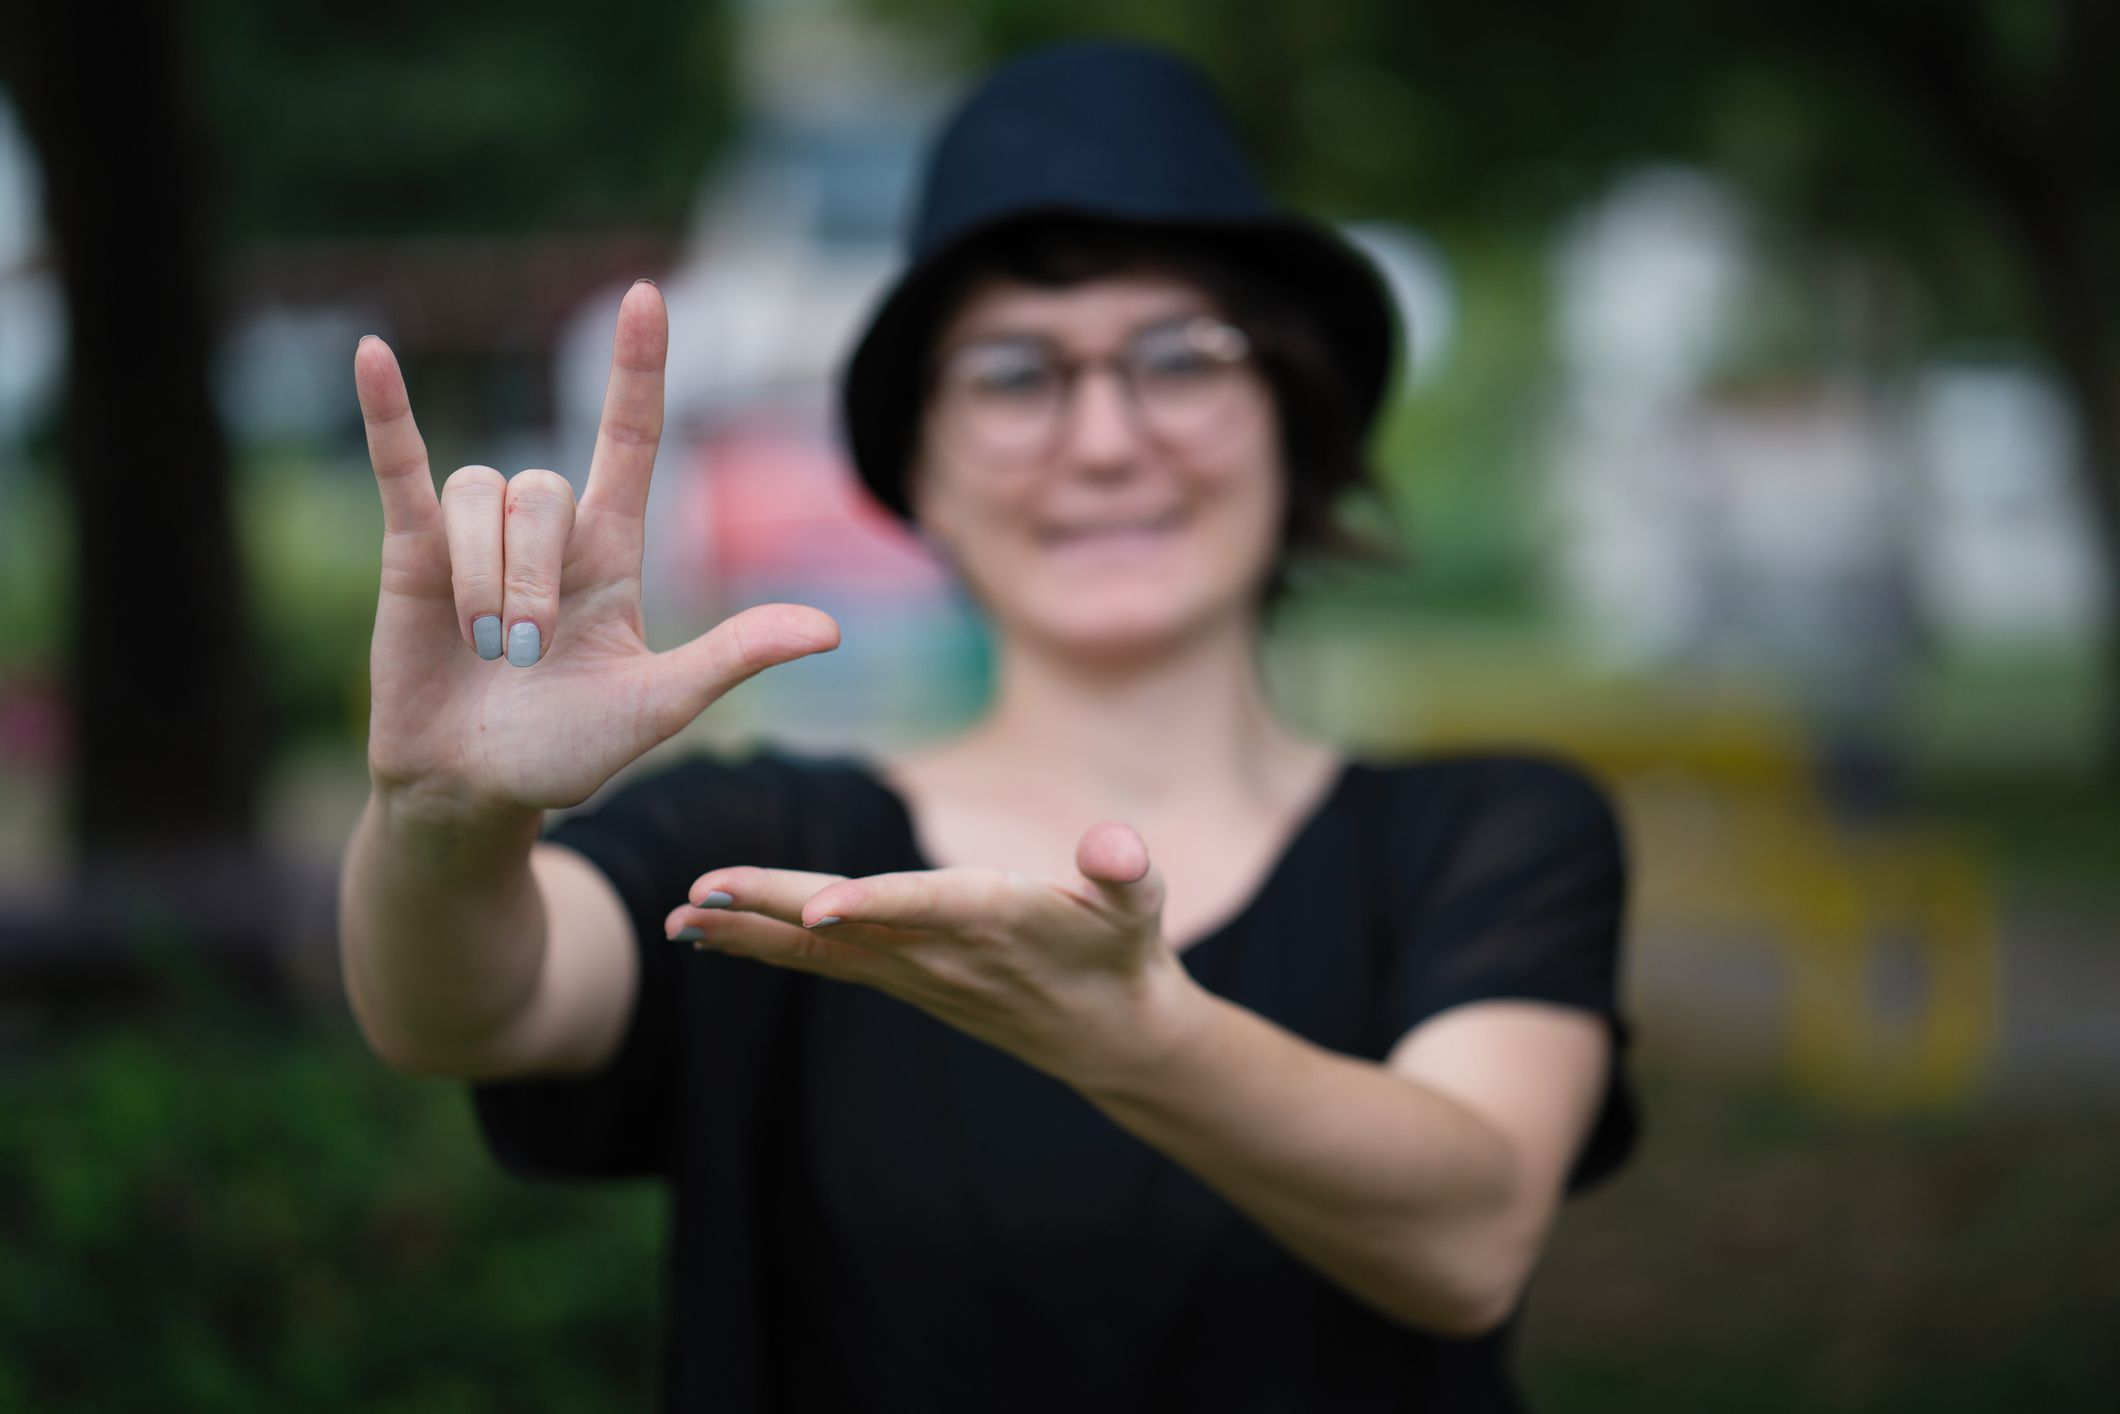 Someone showing a sign language sign in an outdoor setting.